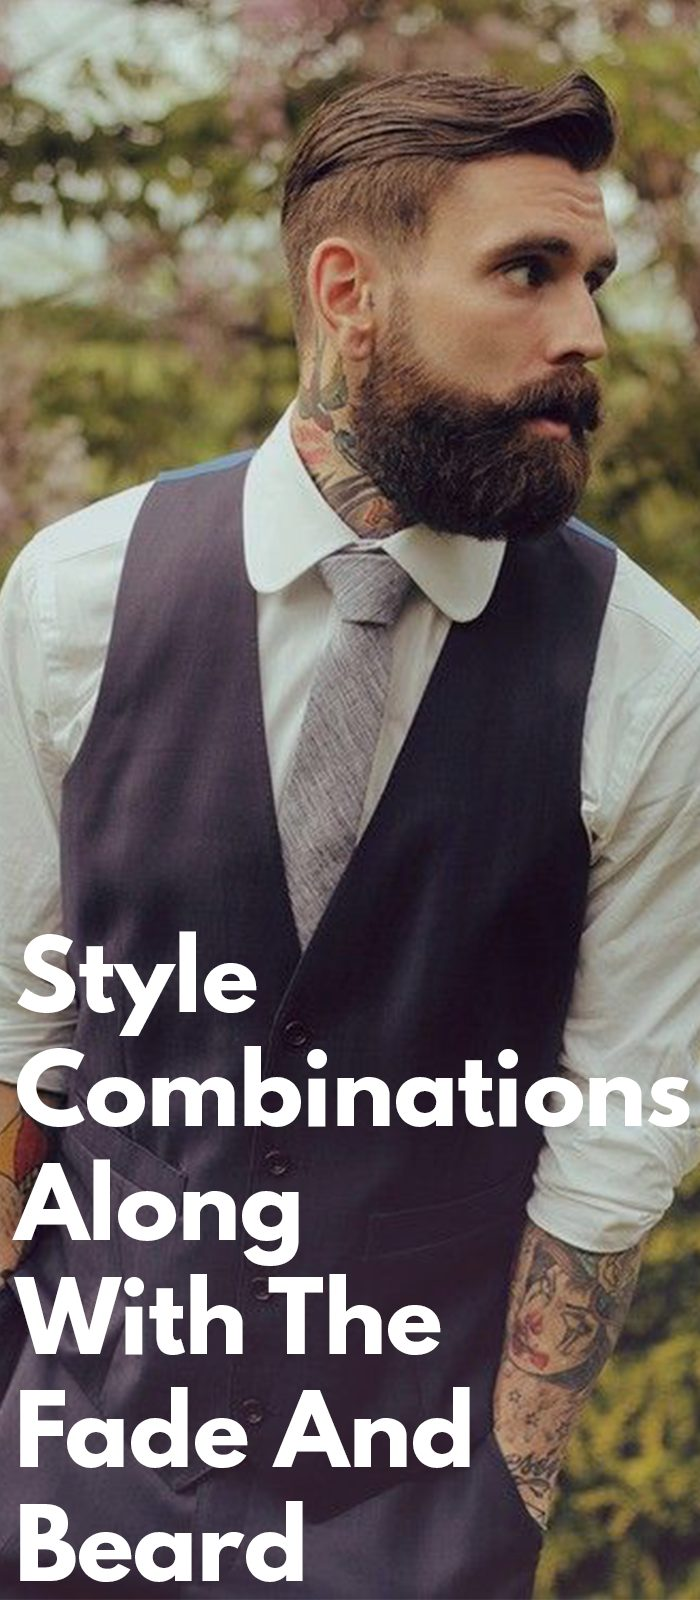 Style Combinations Along With The Fade And Beard